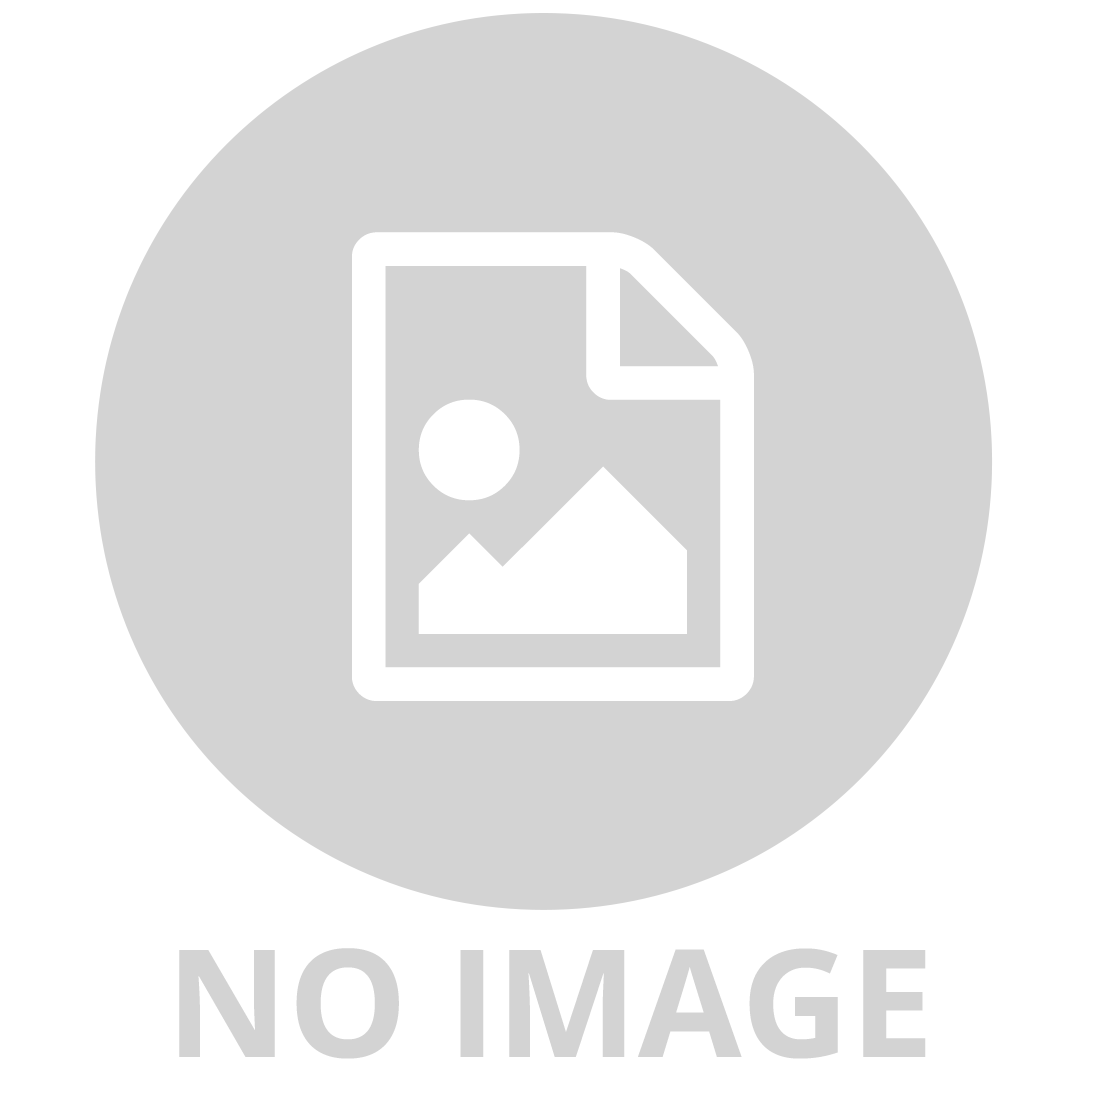 Melgoa Matt Black Wall Light